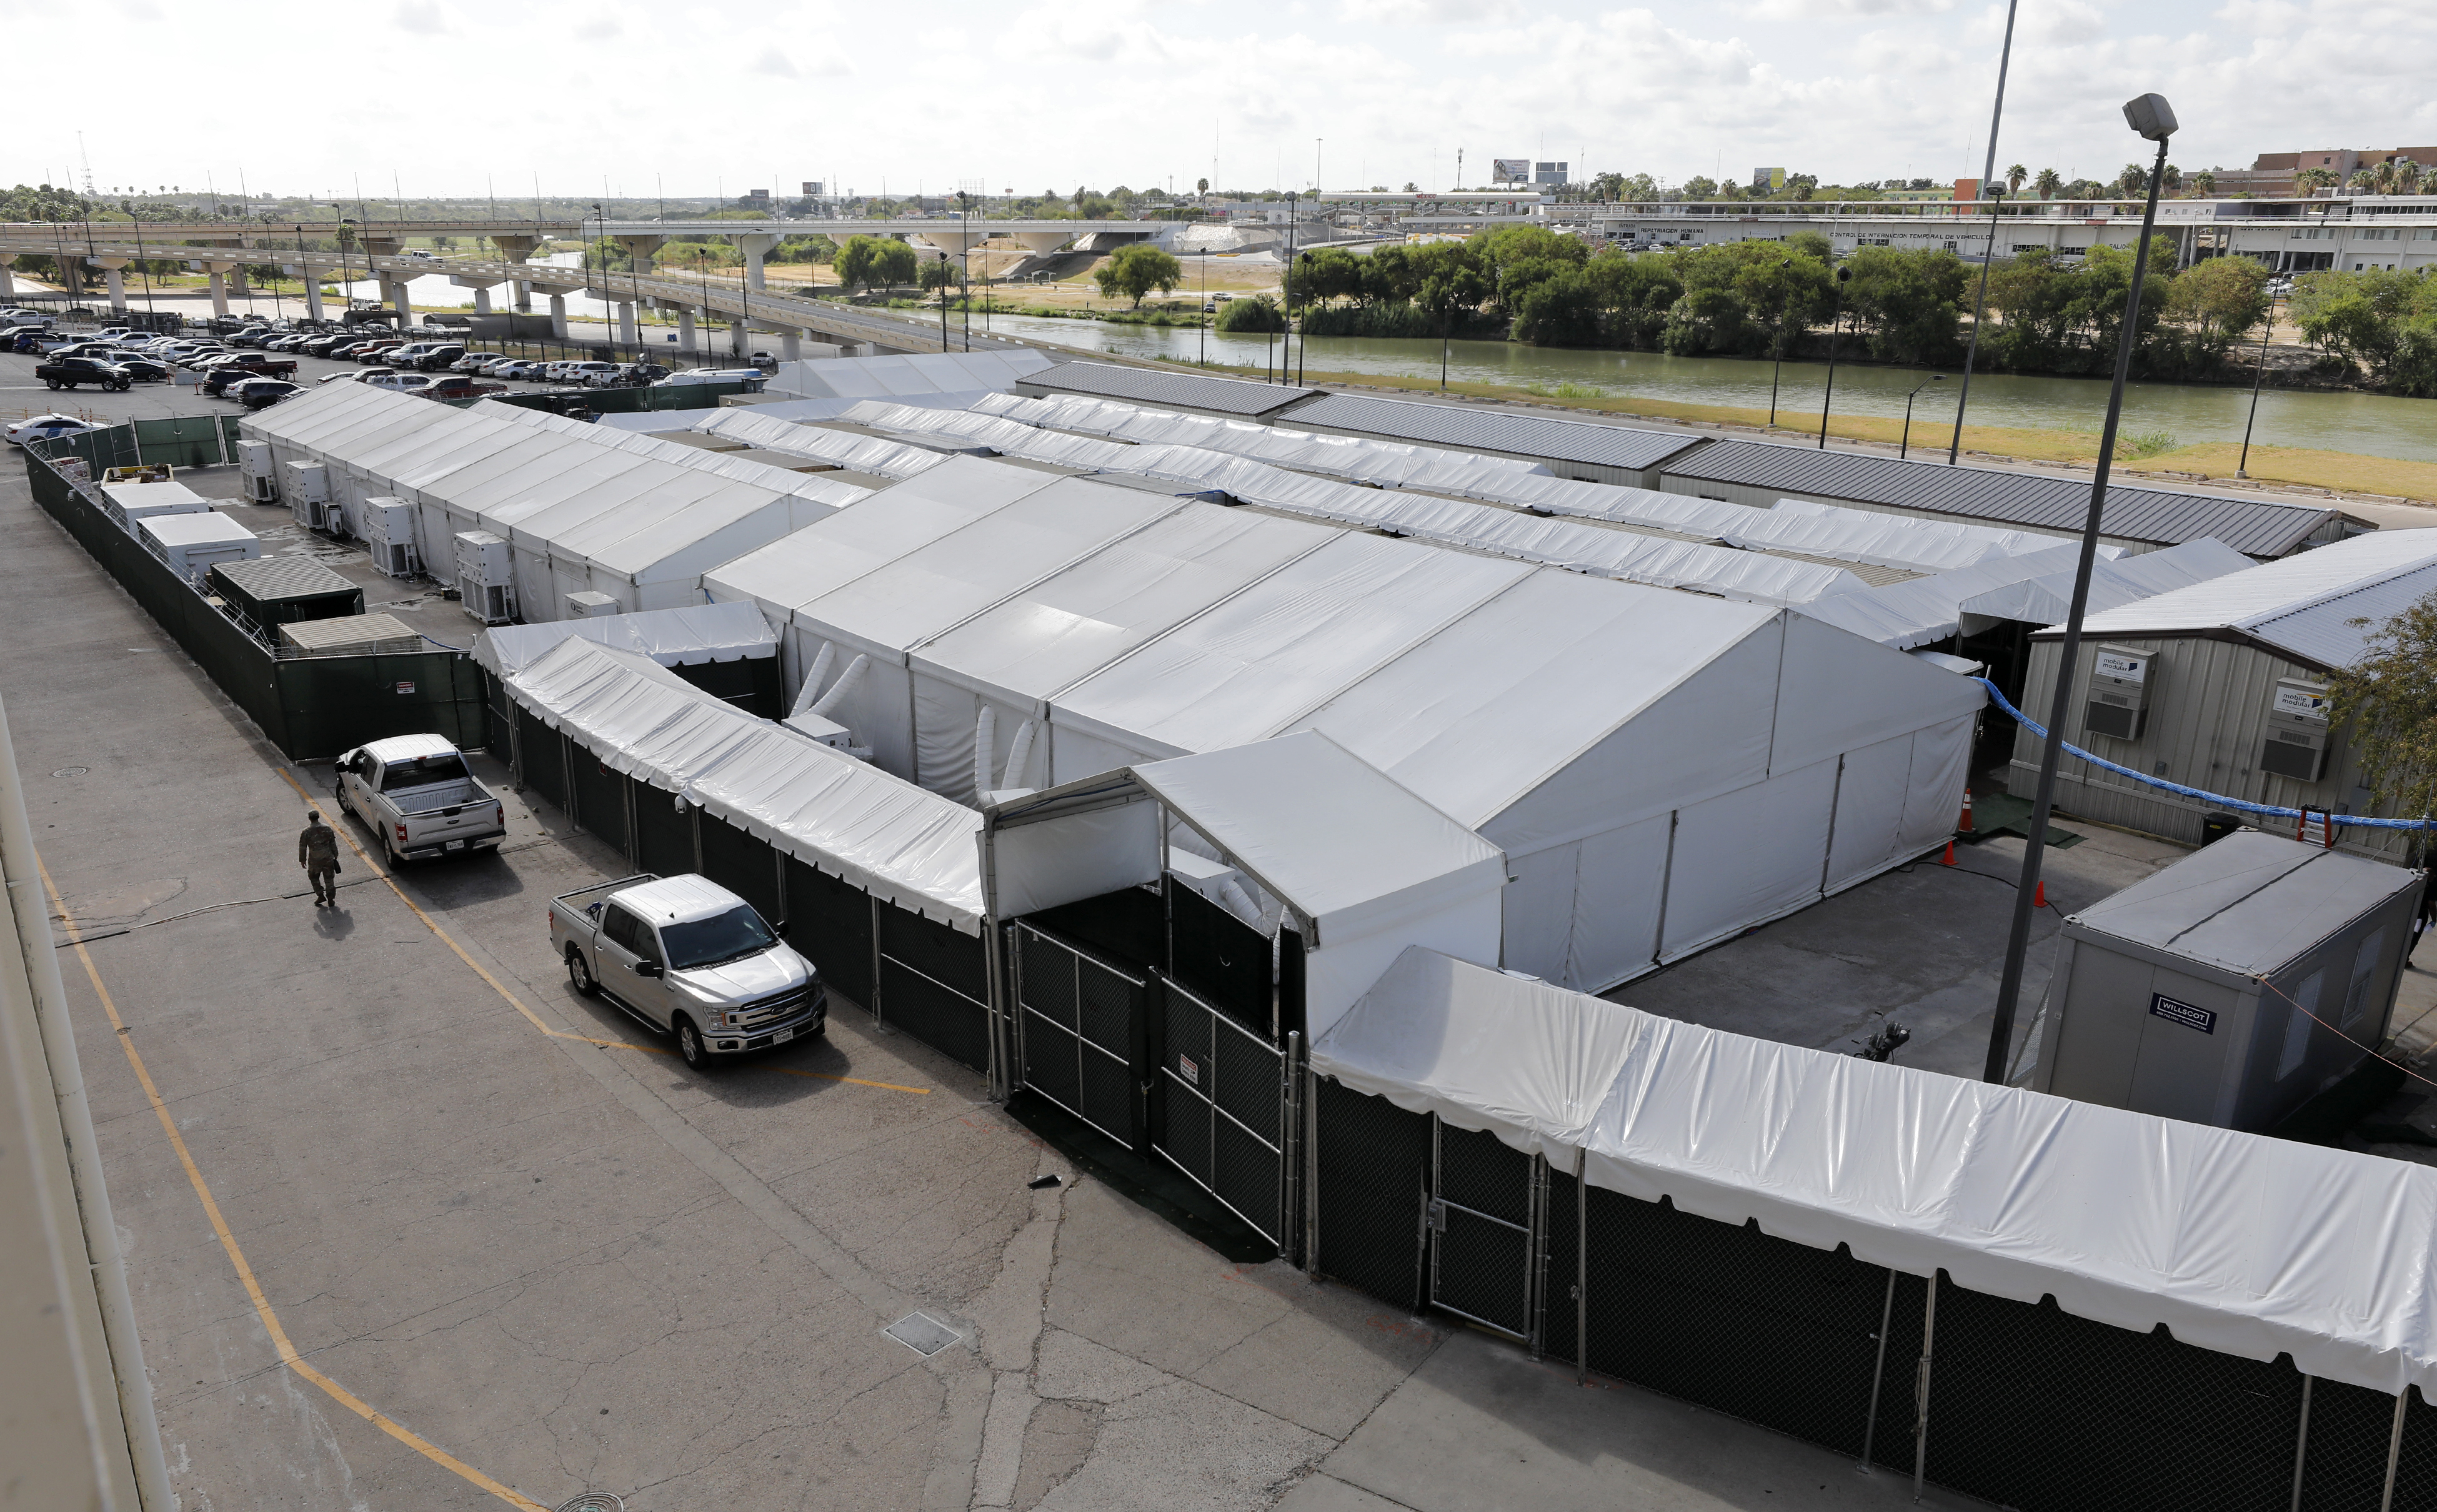 A view of the tents behind La Posada Hotel, to be used as temporary courtrooms in asylum hearings, Wednesday, Aug. 21, 2019, in Laredo, Texas. ( Edward A. Ornelas, For the Deseret News )